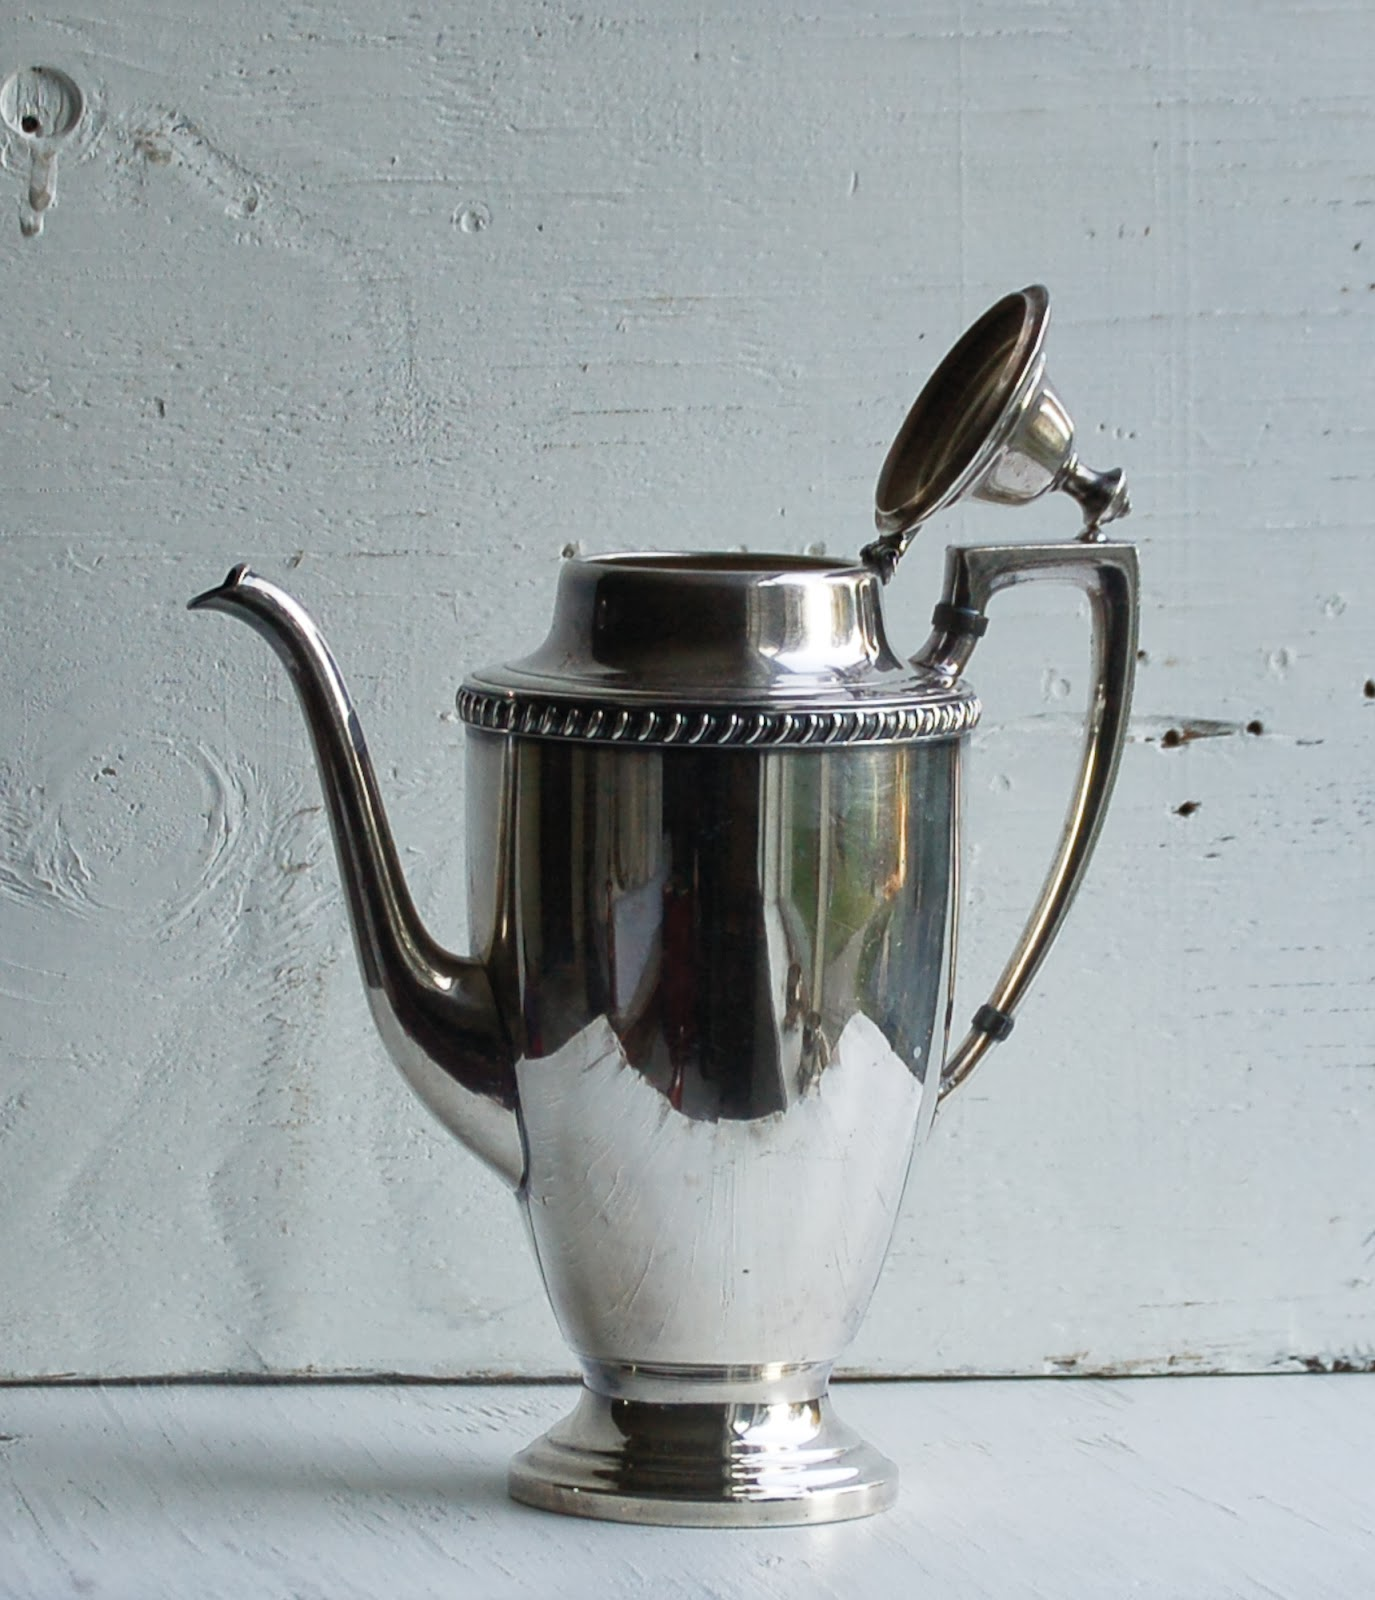 https://www.etsy.com/listing/174609833/vintage-silver-plated-tea-set-teapot?ref=shop_home_active_1&ga_search_query=tea